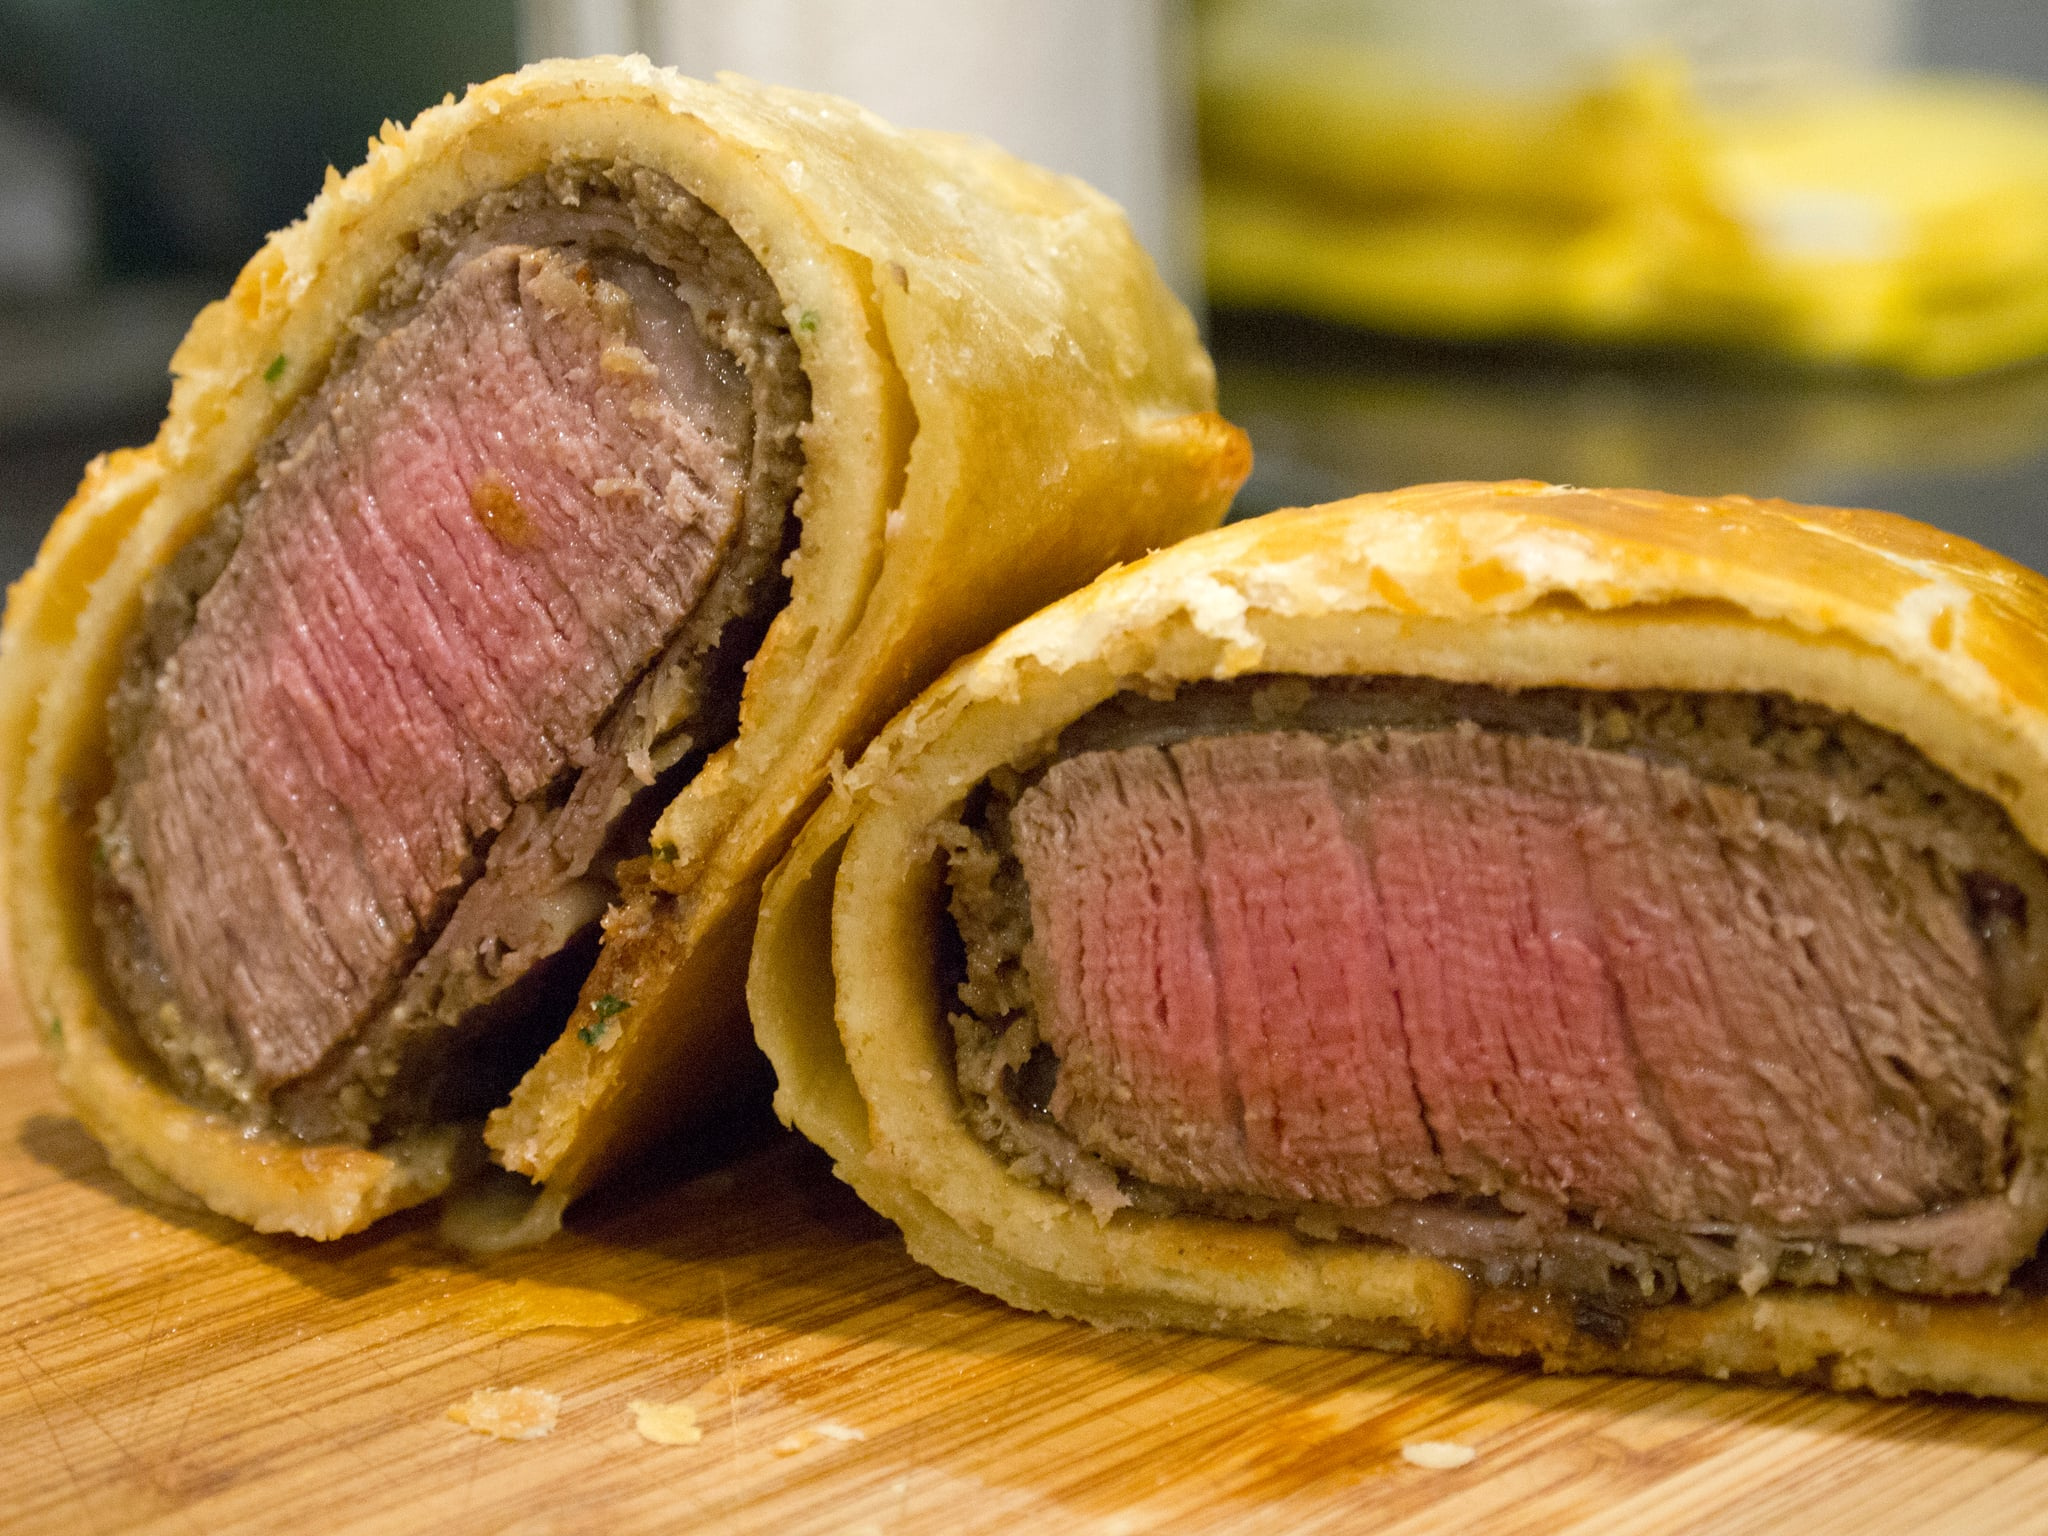 Gordon Ramsay Beef Wellington Recipe | POPSUGAR Food